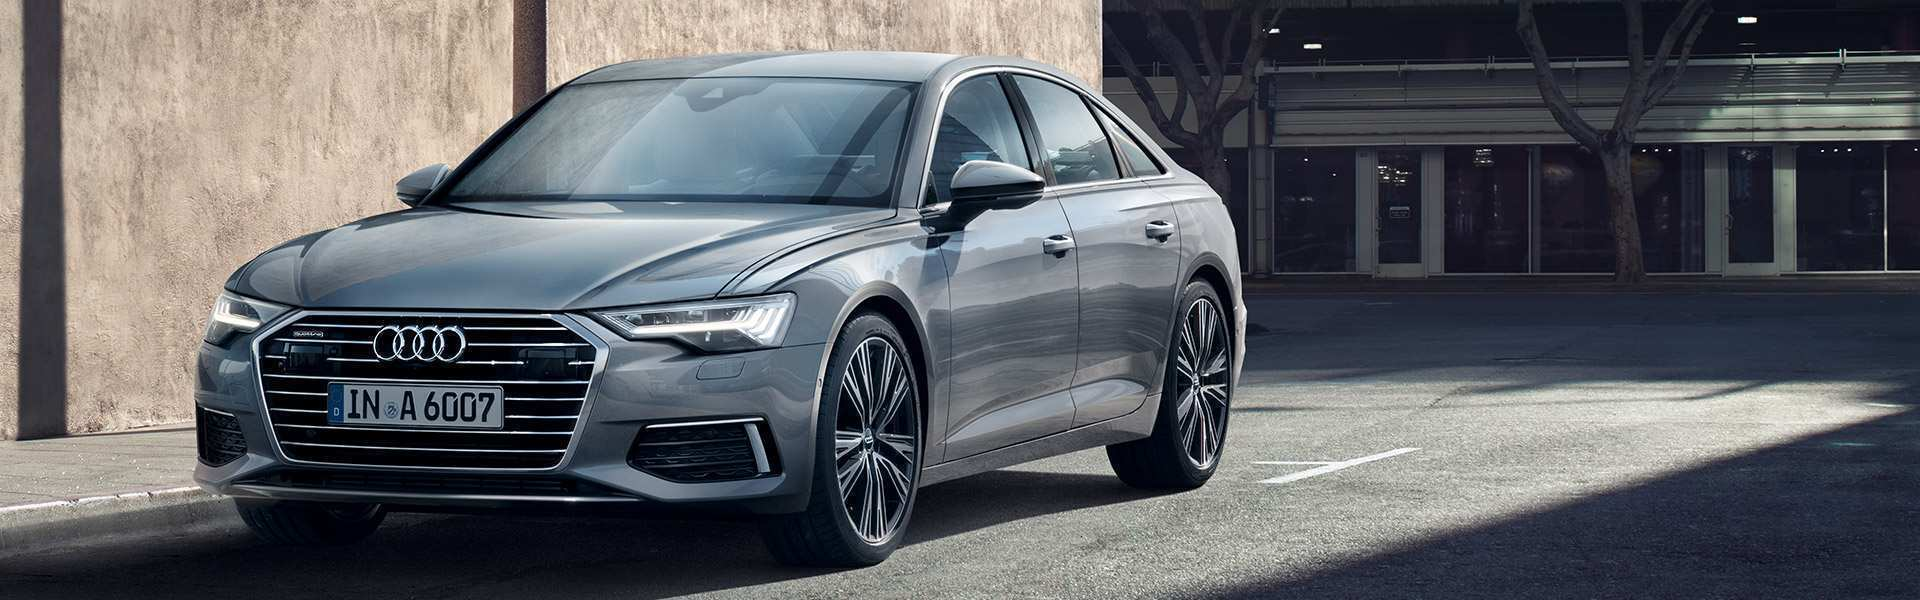 94 The 2020 Audi A6 Redesign And Concept